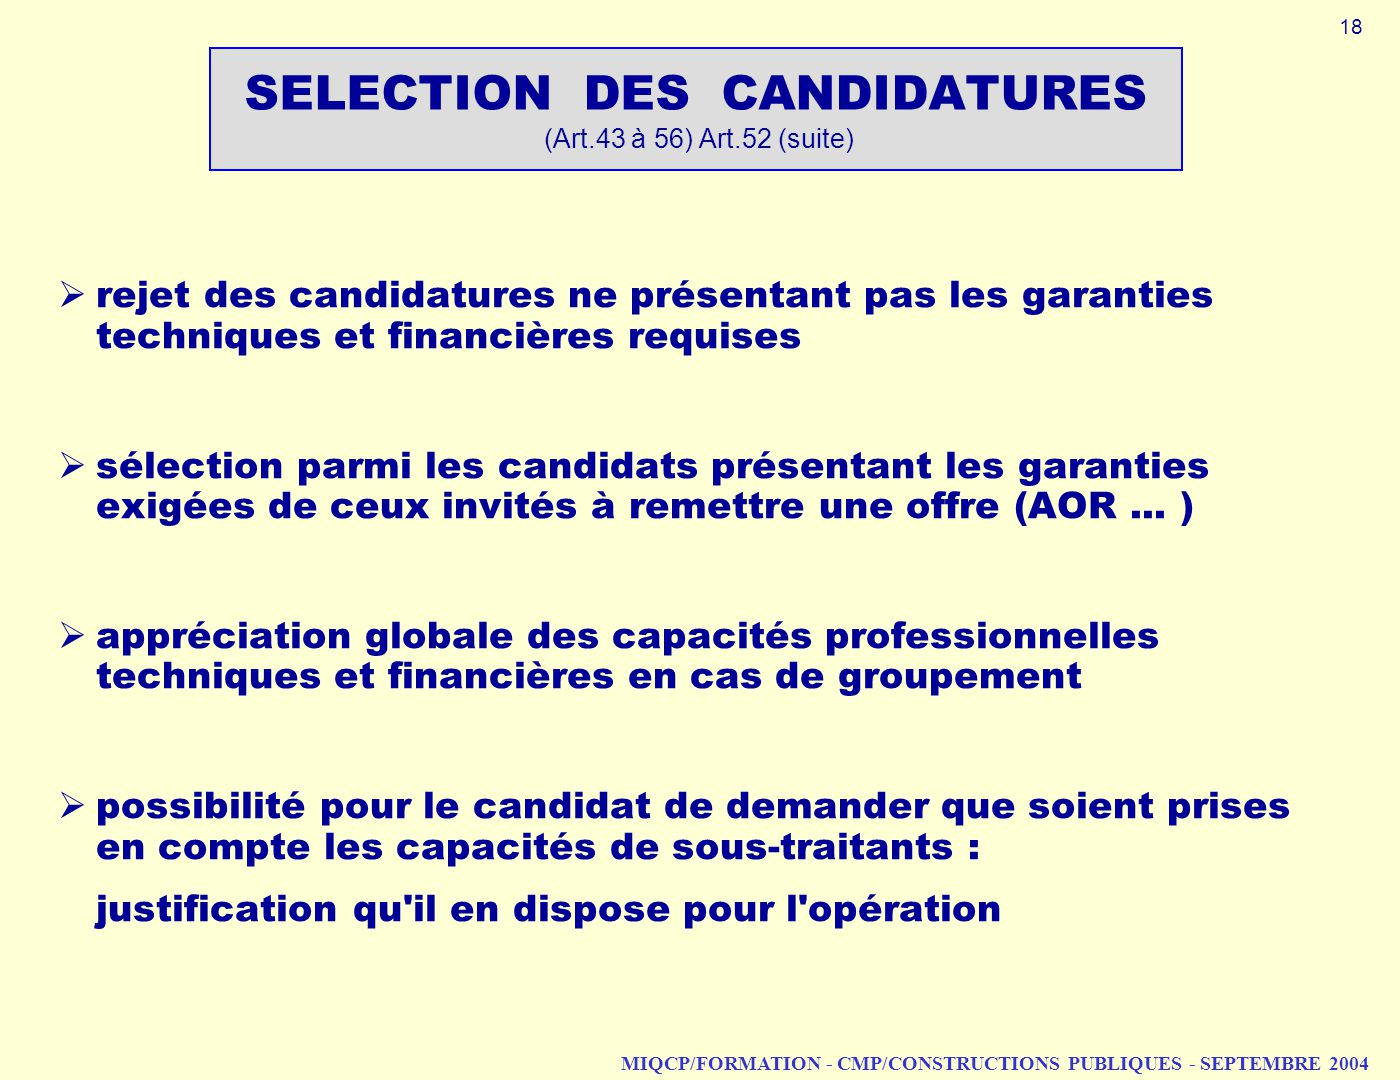 SELECTION DES CANDIDATURES (Art.43 à 56) Art.52 (suite)